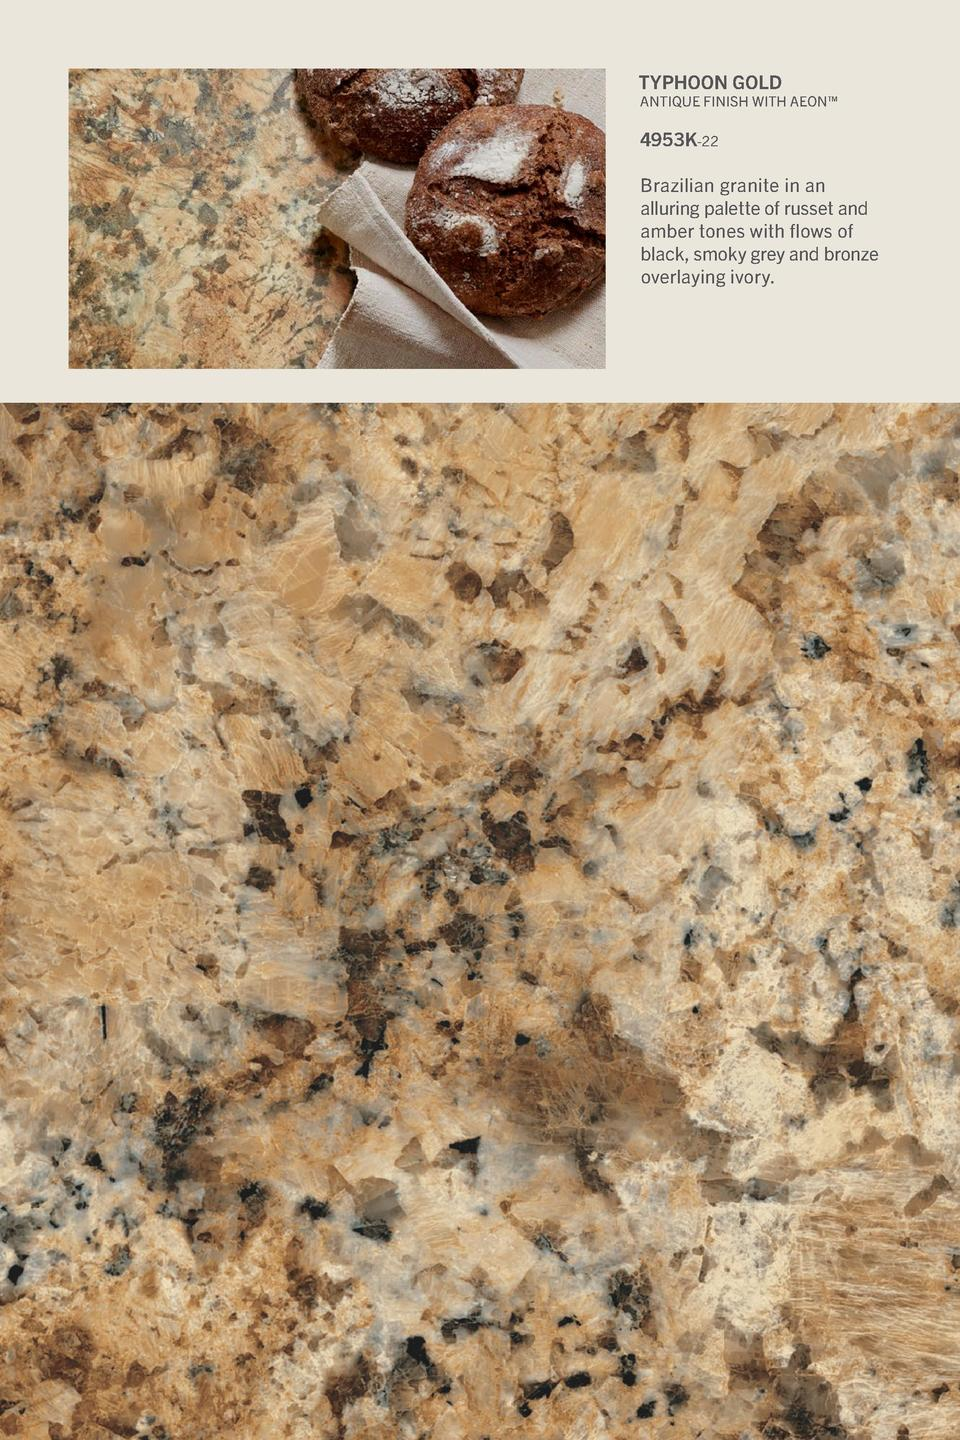 Typhoon Gold  Antique Finish With Aeon     4953K-22 Brazilian granite in an alluring palette of russet and amber tones wit...